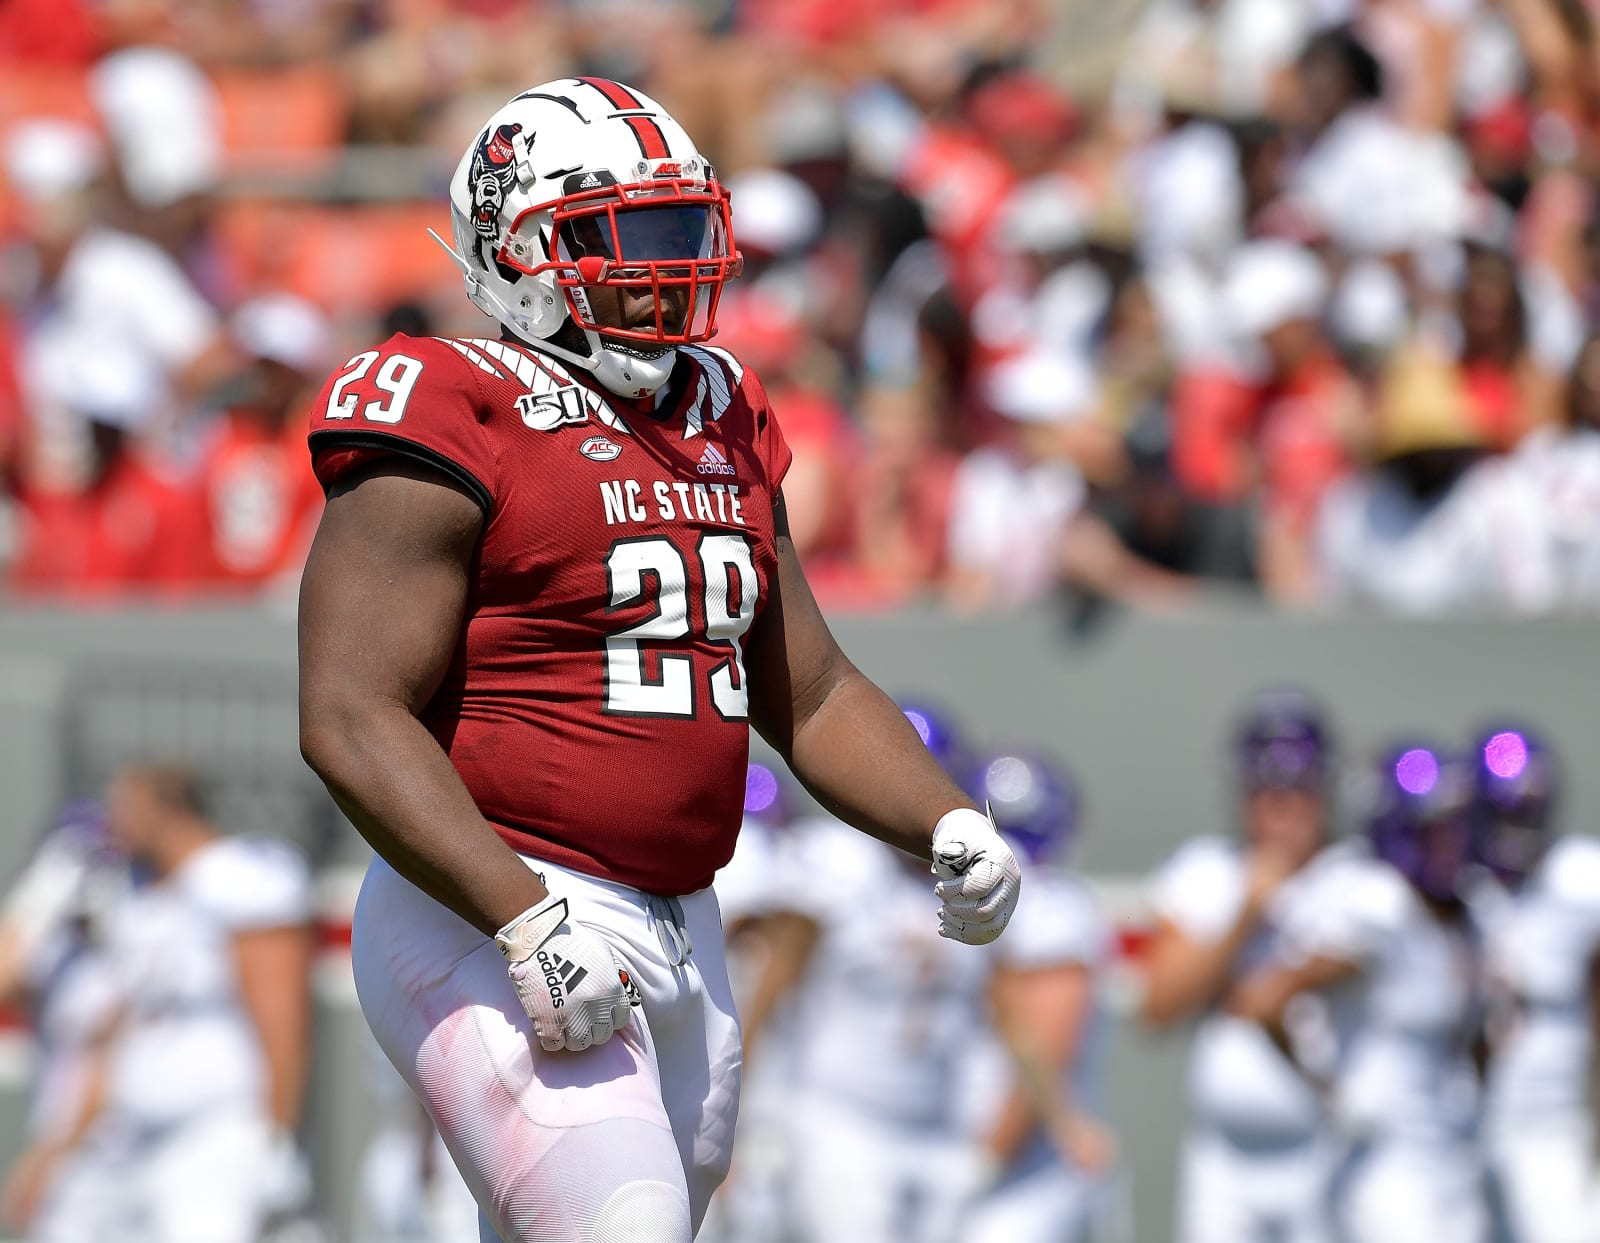 NC State Football: Top 3 Wolfpack prospects for 2021 NFL Draft - Page 2